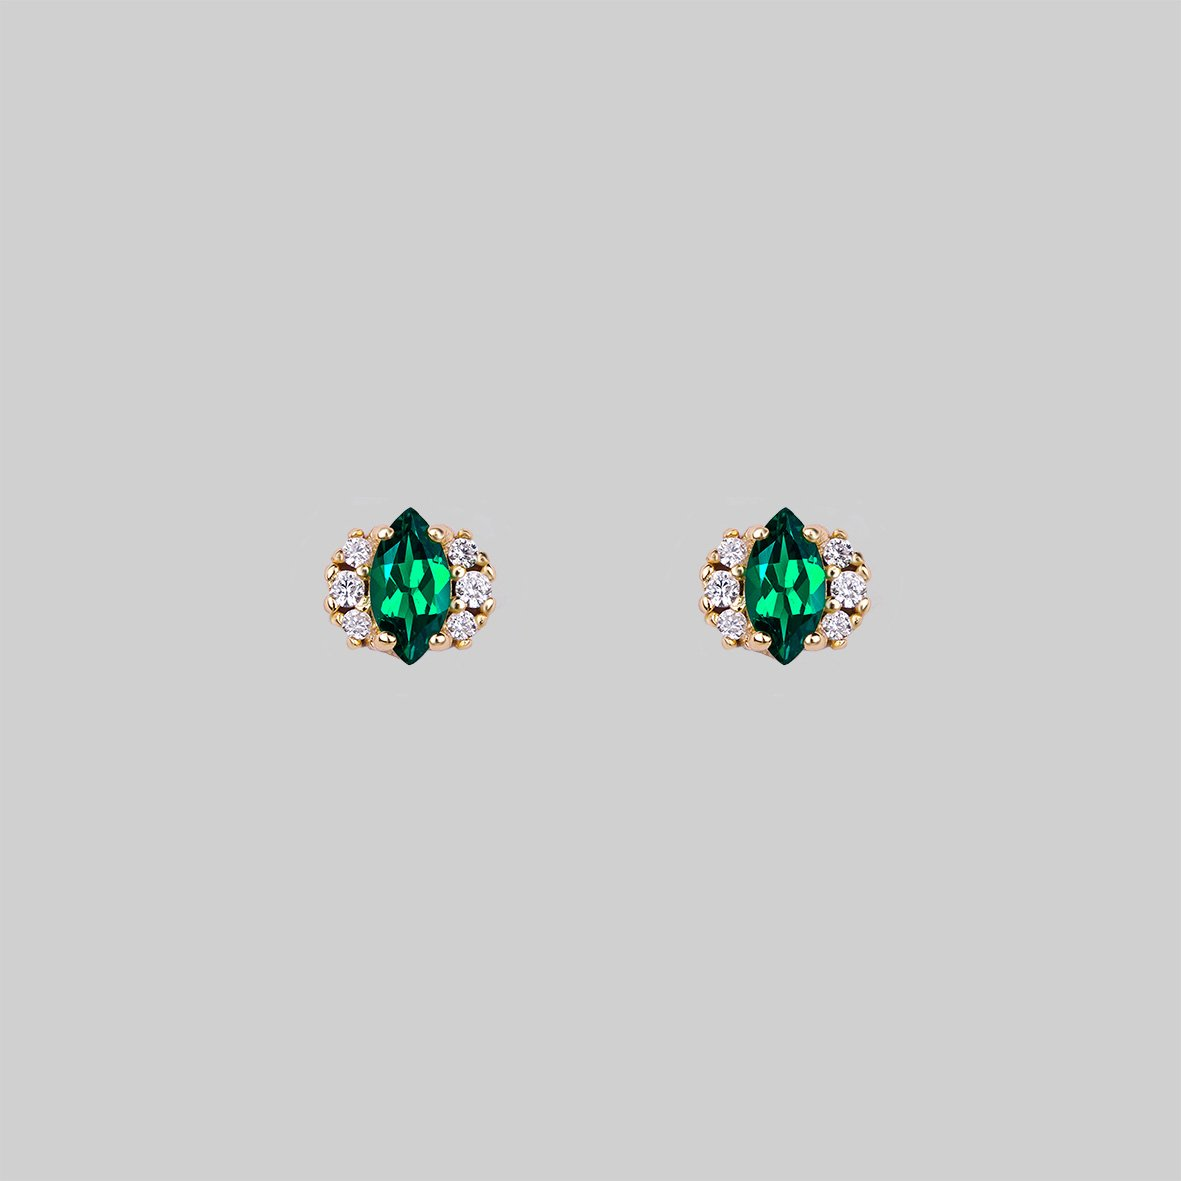 green quartz earring studs